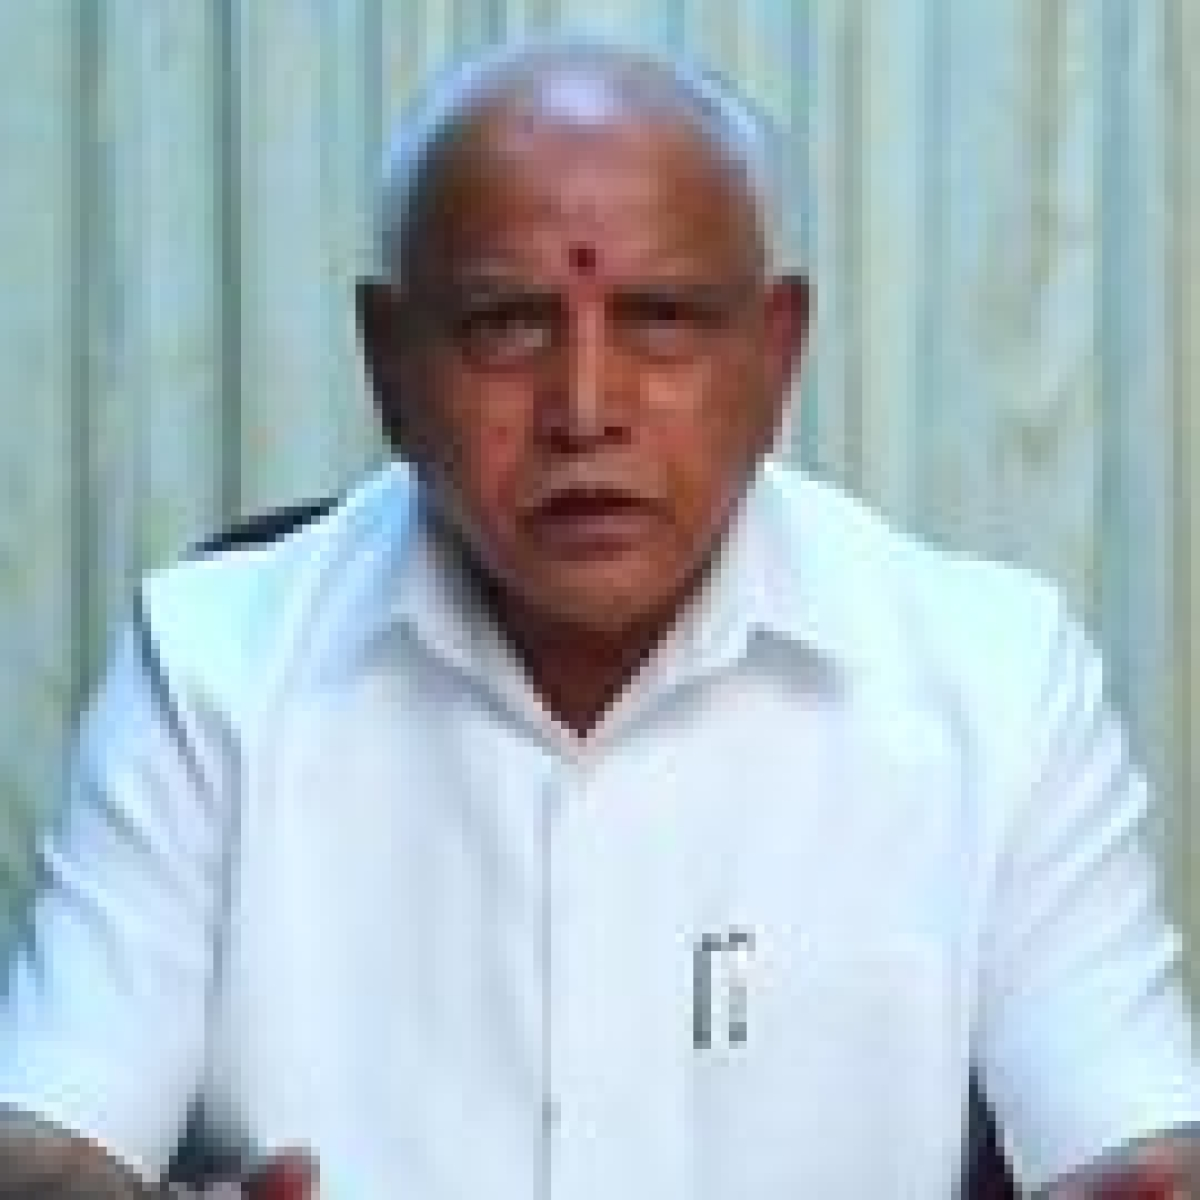 Mosques, churches likely to open along with temples from June 1: Karnataka Chief Minister BS Yediyurappa